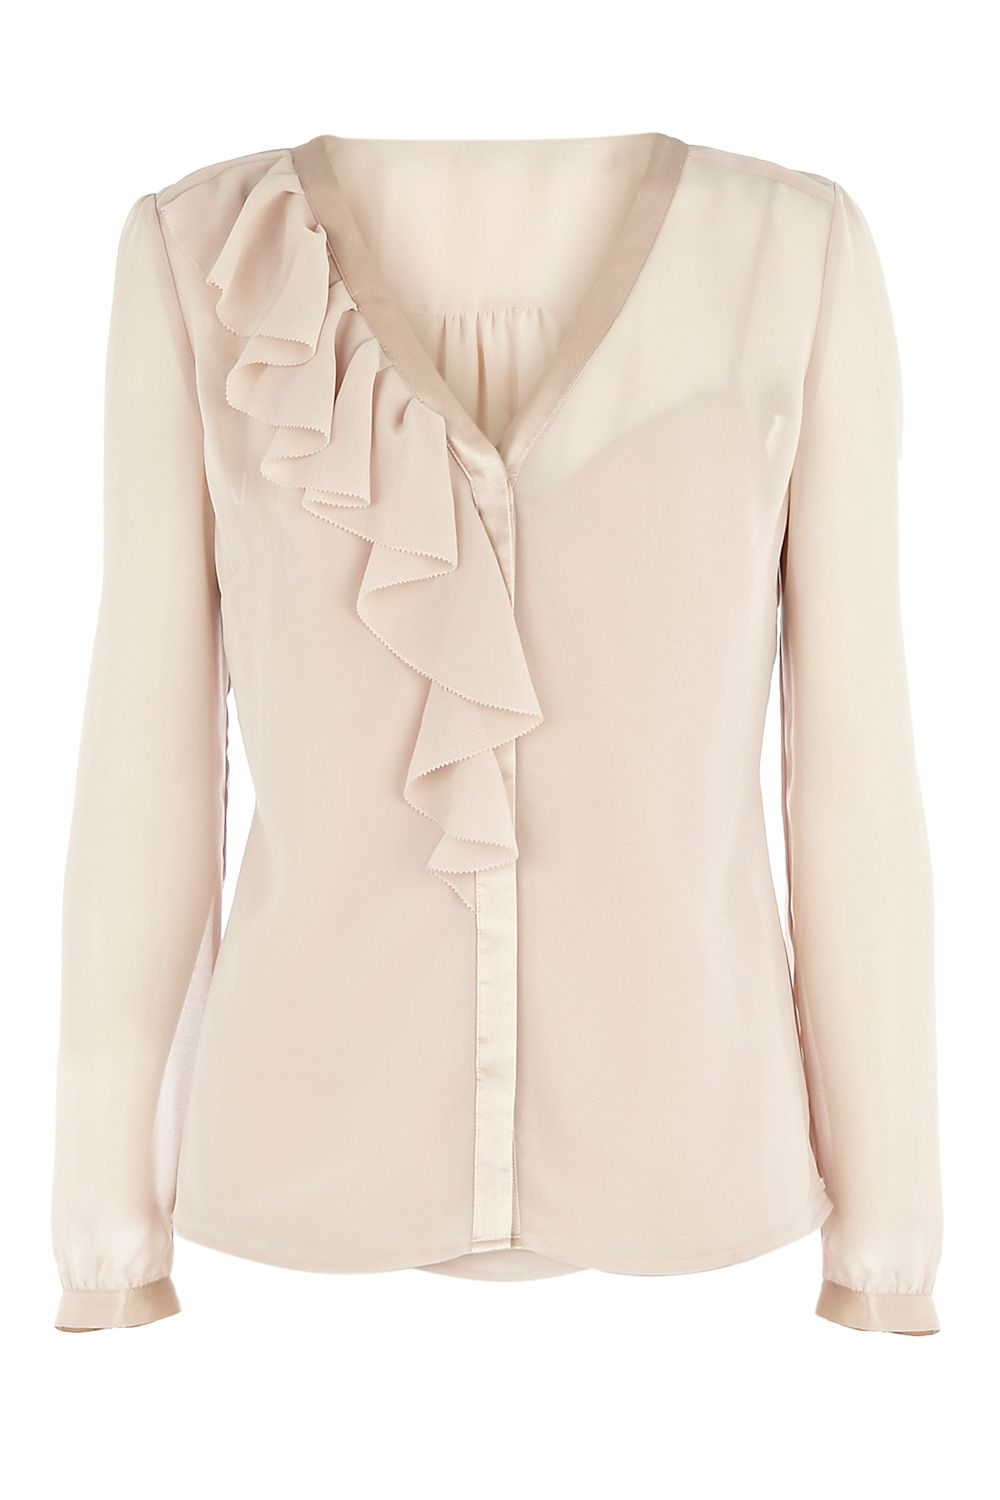 Coast Womens Coast Rachel blouse, Biscuit 160319088 product image